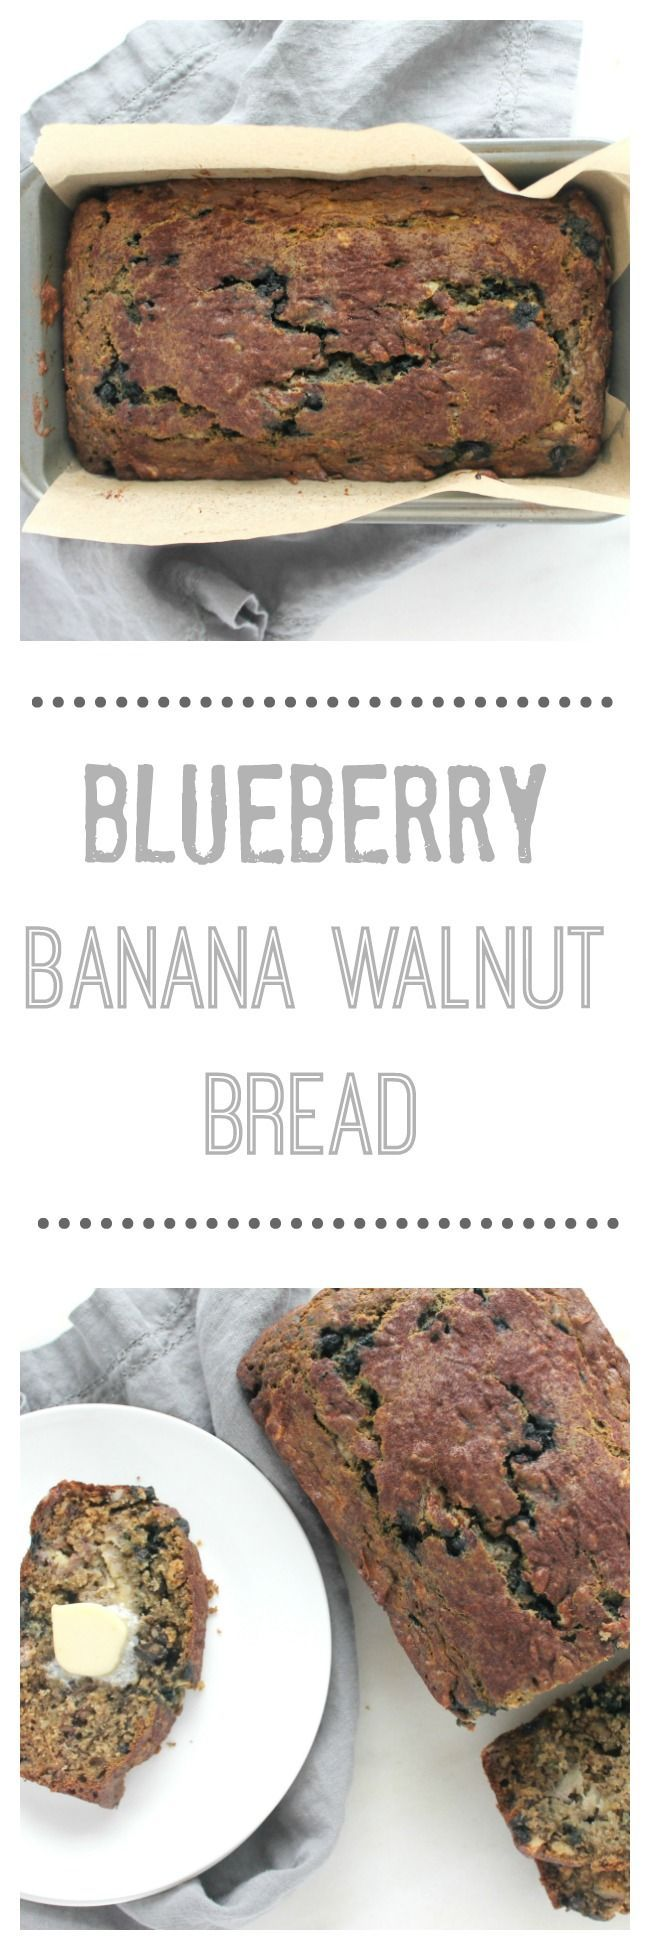 Blueberry Banana Walnut Bread. Wild blueberries, mashed bananas and chopped walnuts folded into a slightly sweet batter and baked to a golden perfection.  #bananabread #healthybreadrecipes #blueberrybananawalnutbread #healthybananabread #TheRecipeReDux #breadrecipes #bananabreadrecipes